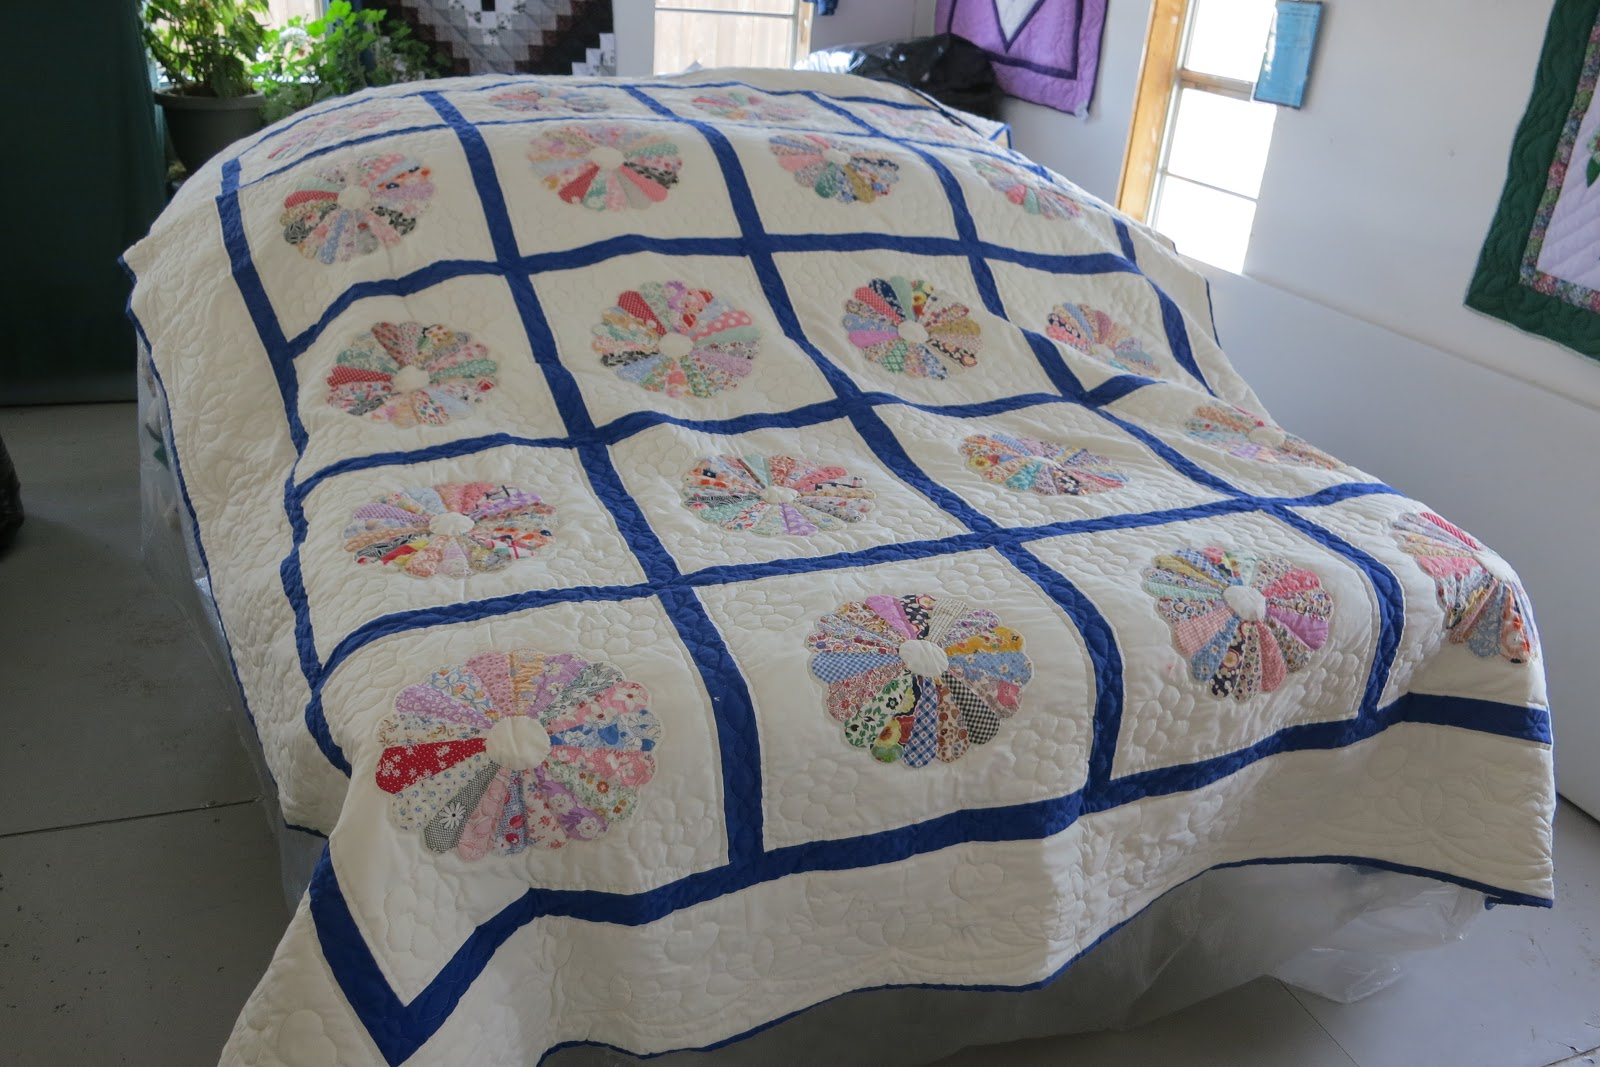 Amish Quilt Shop In Cherry Creek Ny Chautauqua County Tom The